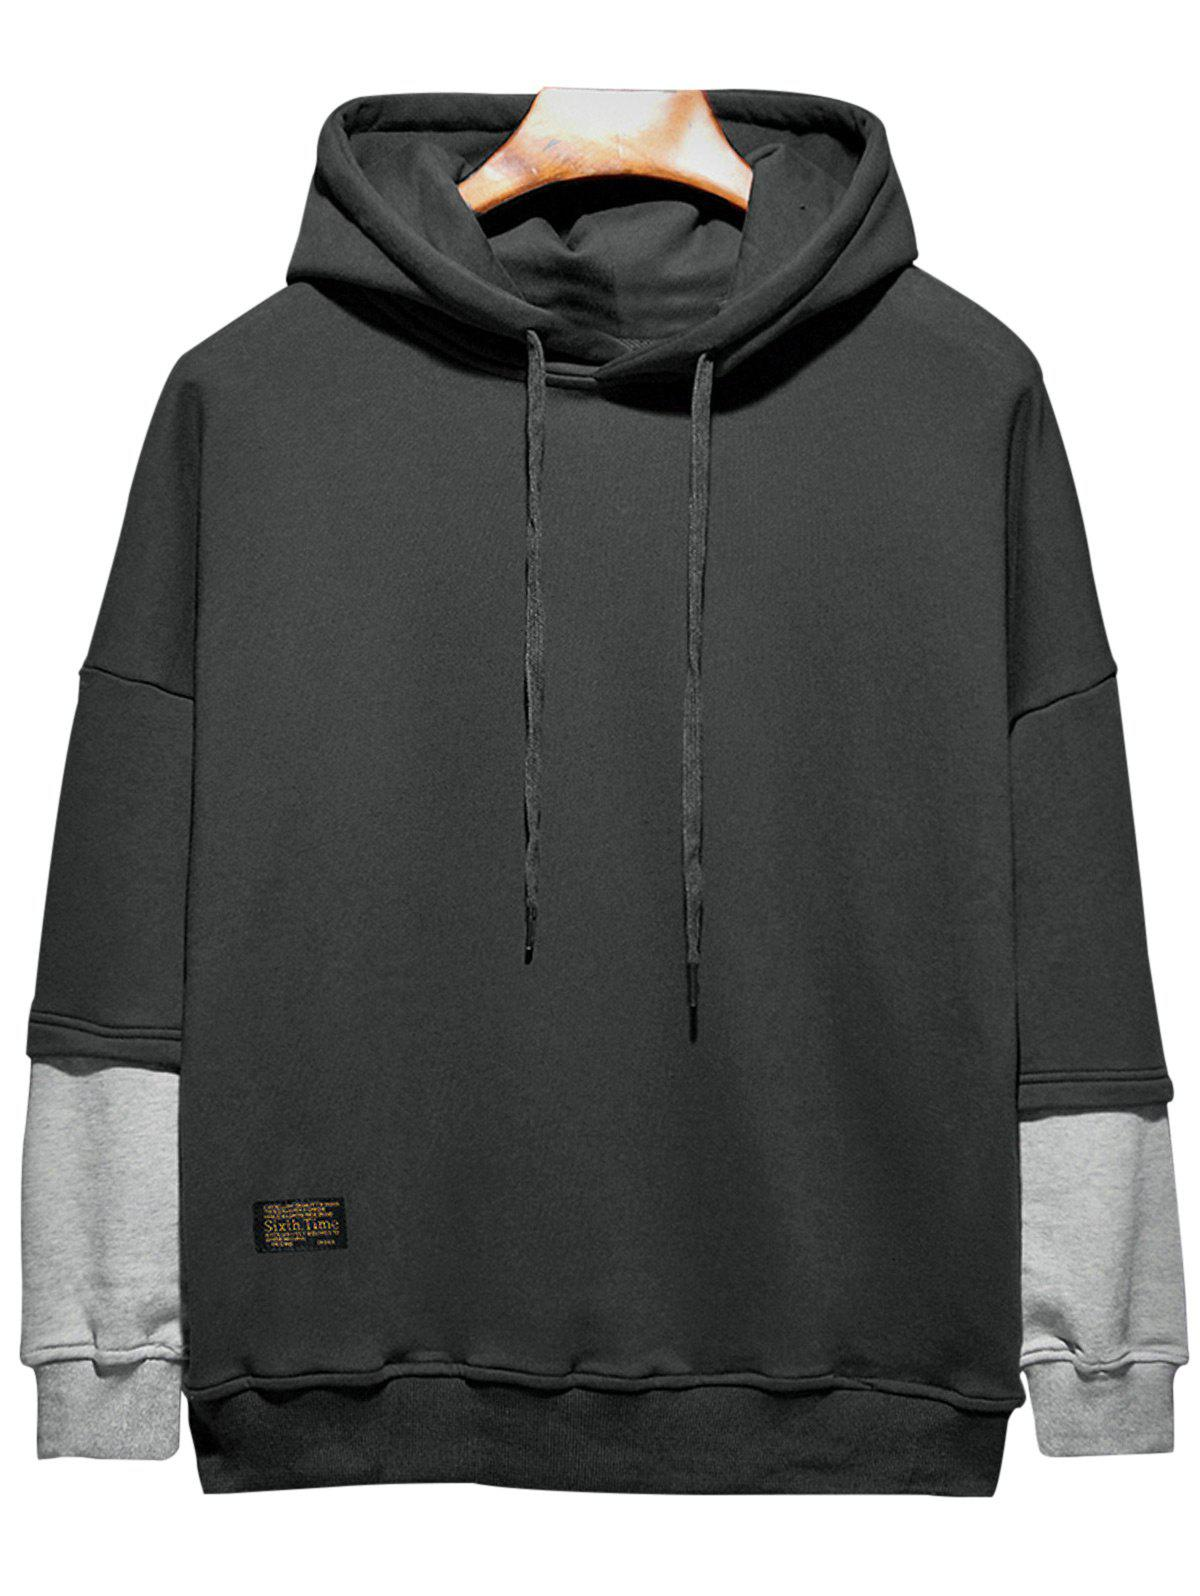 Plus Size Hooded Color Block Panel Raglan Sleeve HoodieMEN<br><br>Size: 5XL; Color: BLACK; Clothes Type: Others; Style: Fashion; Material: Cotton,Polyester; Collar: Hooded; Shirt Length: Regular; Sleeve Length: Long Sleeves; Season: Fall; Weight: 0.6100kg; Package Contents: 1 x Hoodie;